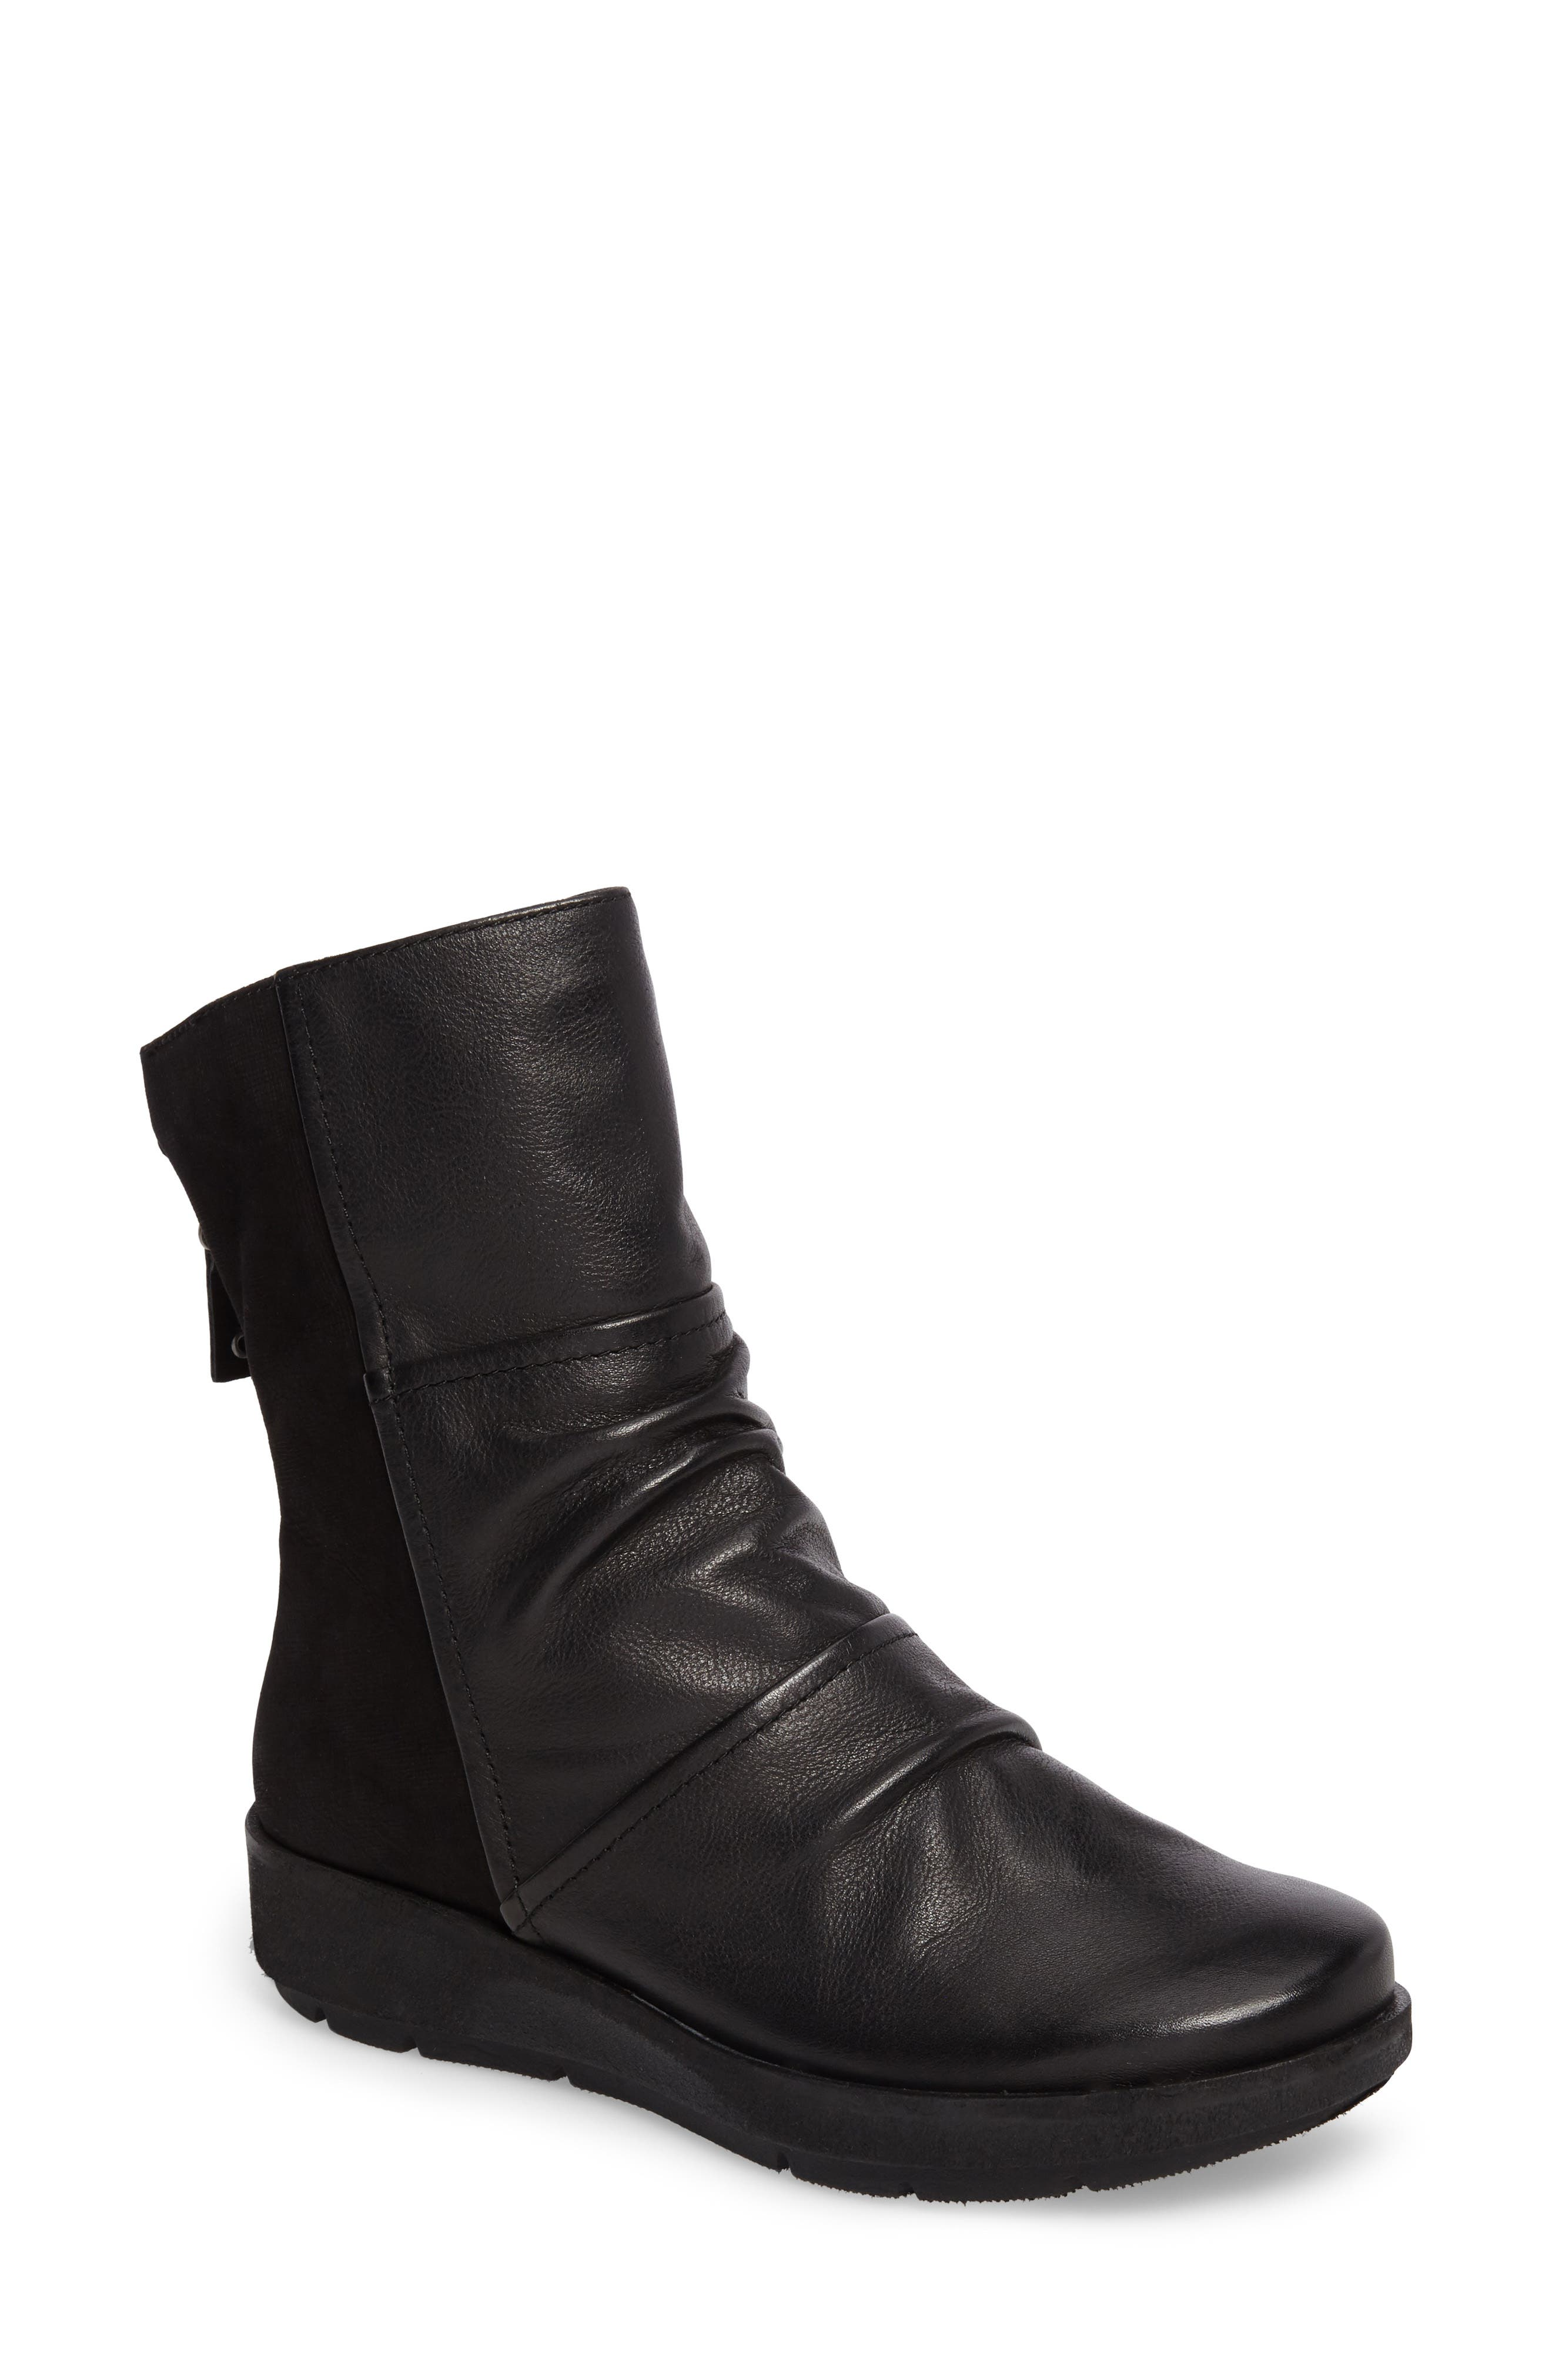 Pilgrim Boot,                         Main,                         color, Black Leather